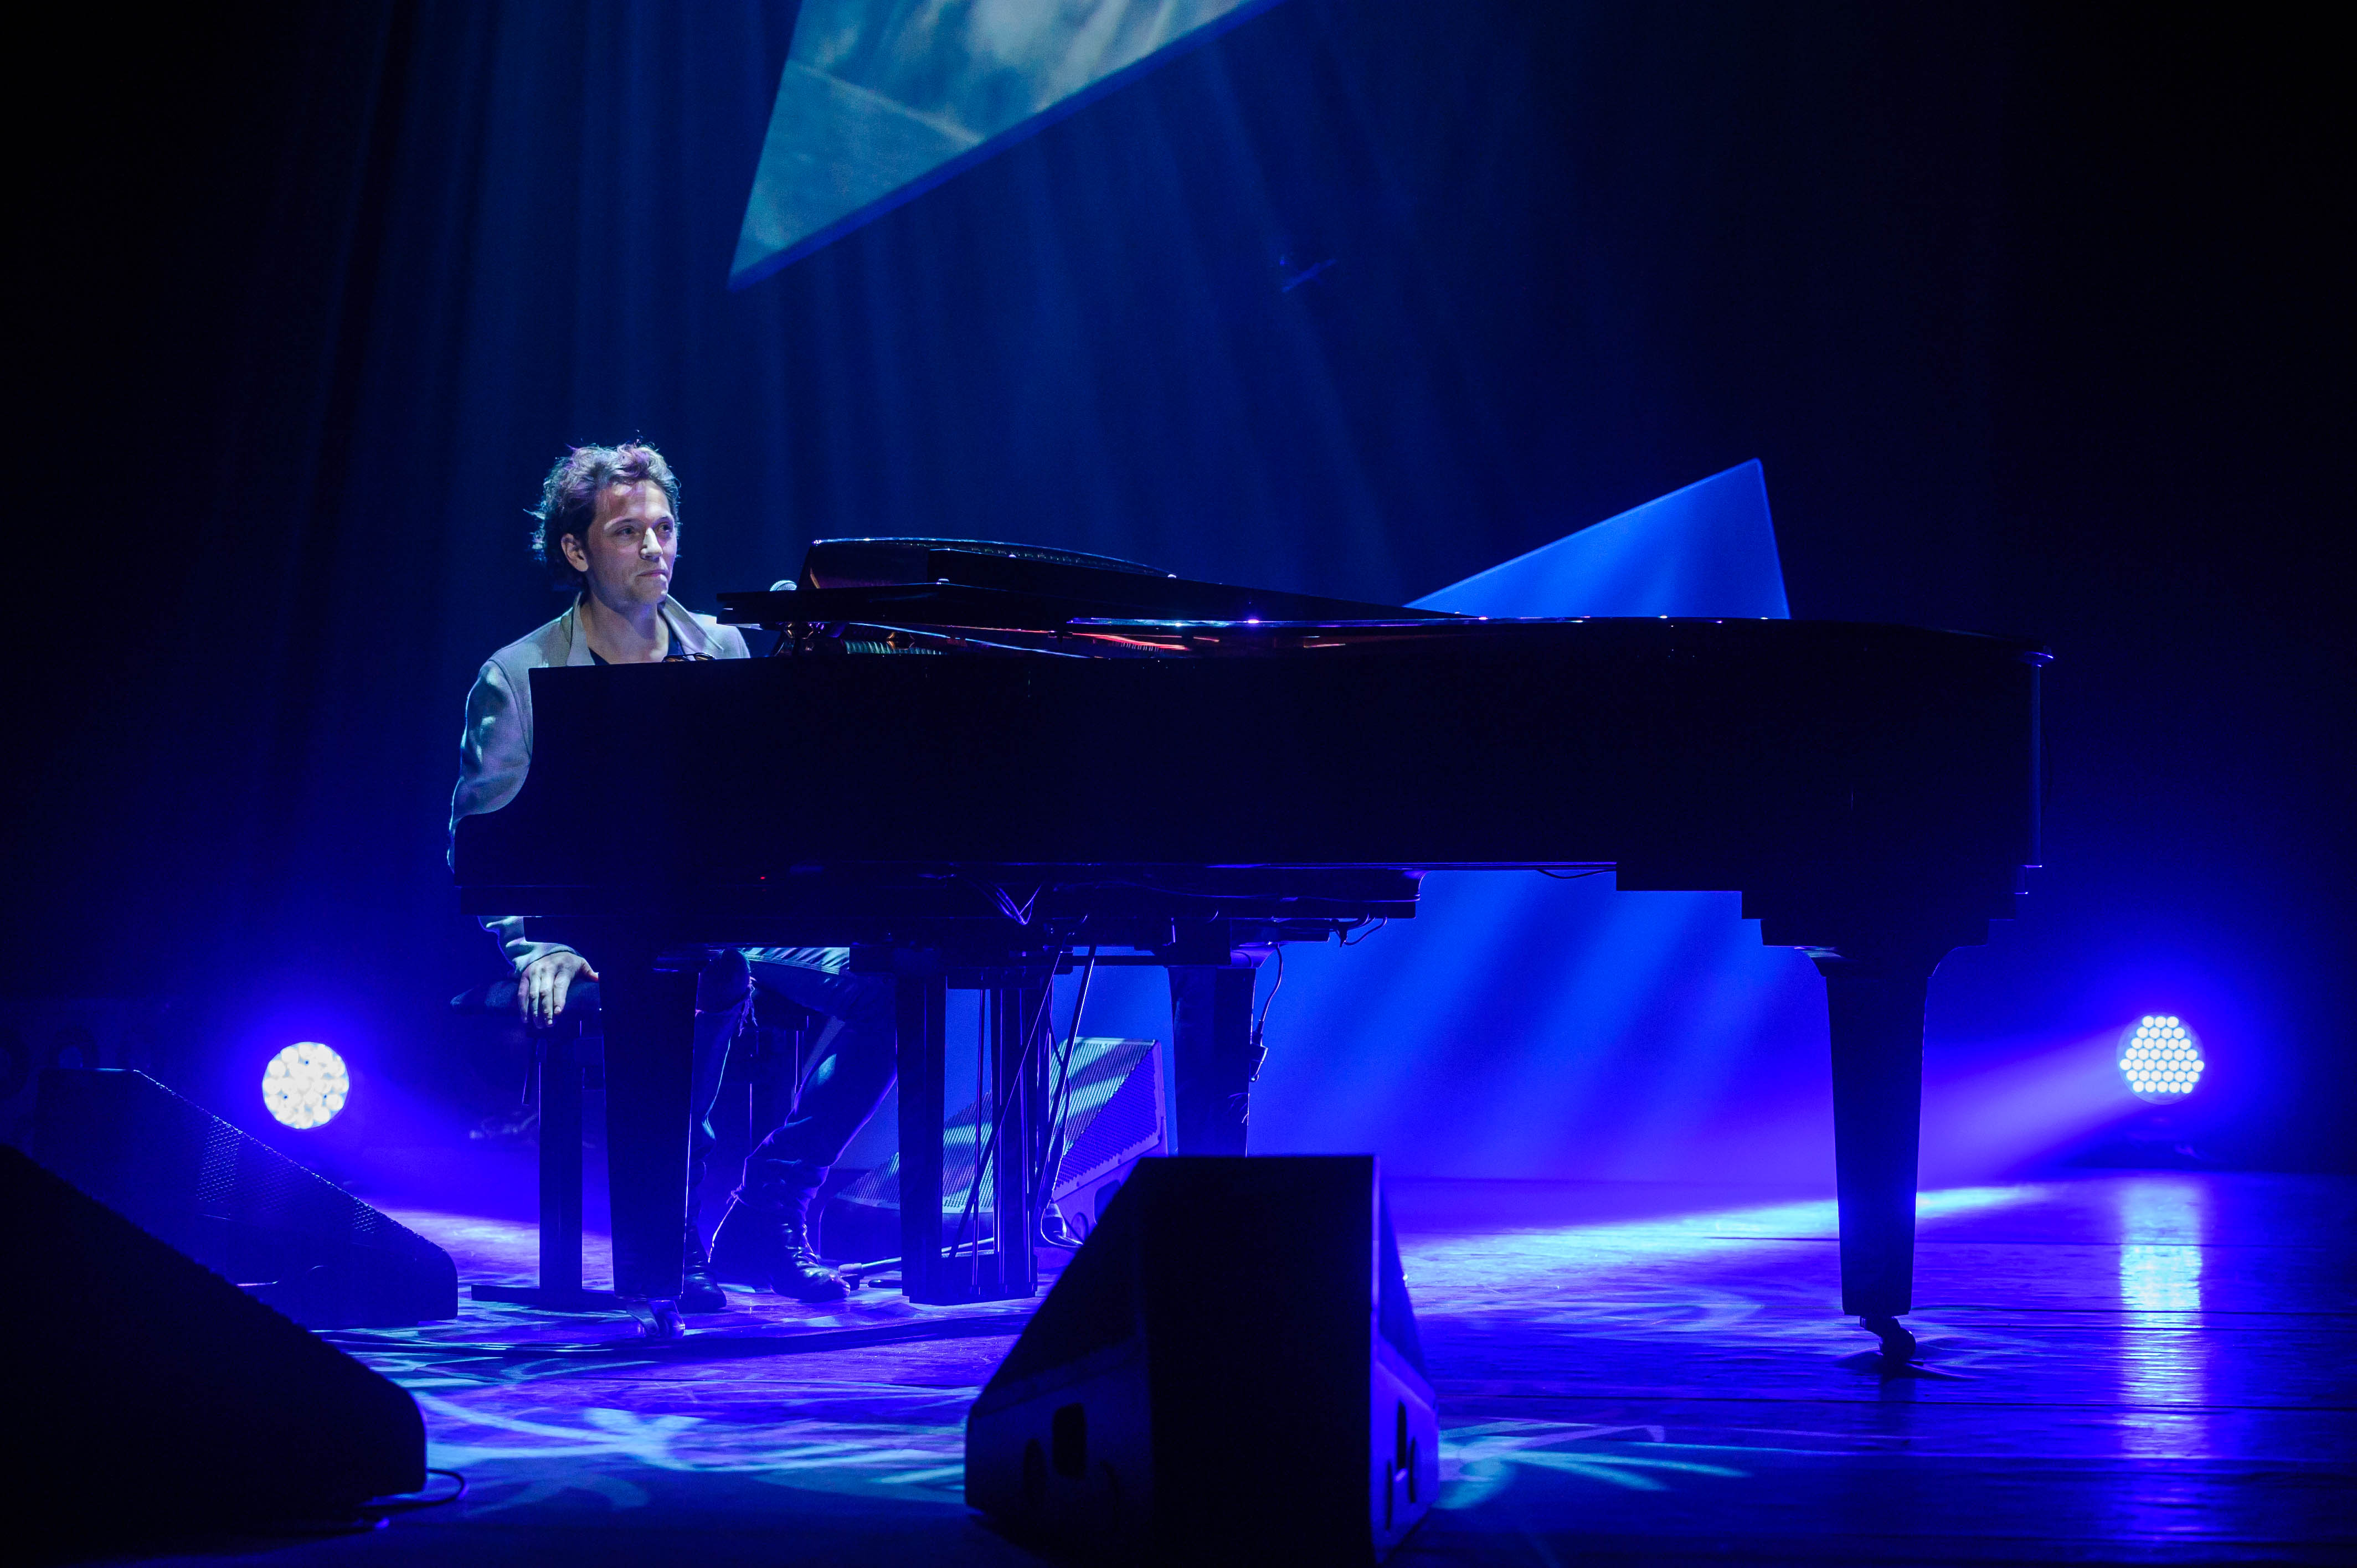 Raphael au piano © Capa Pictures / Europe 1